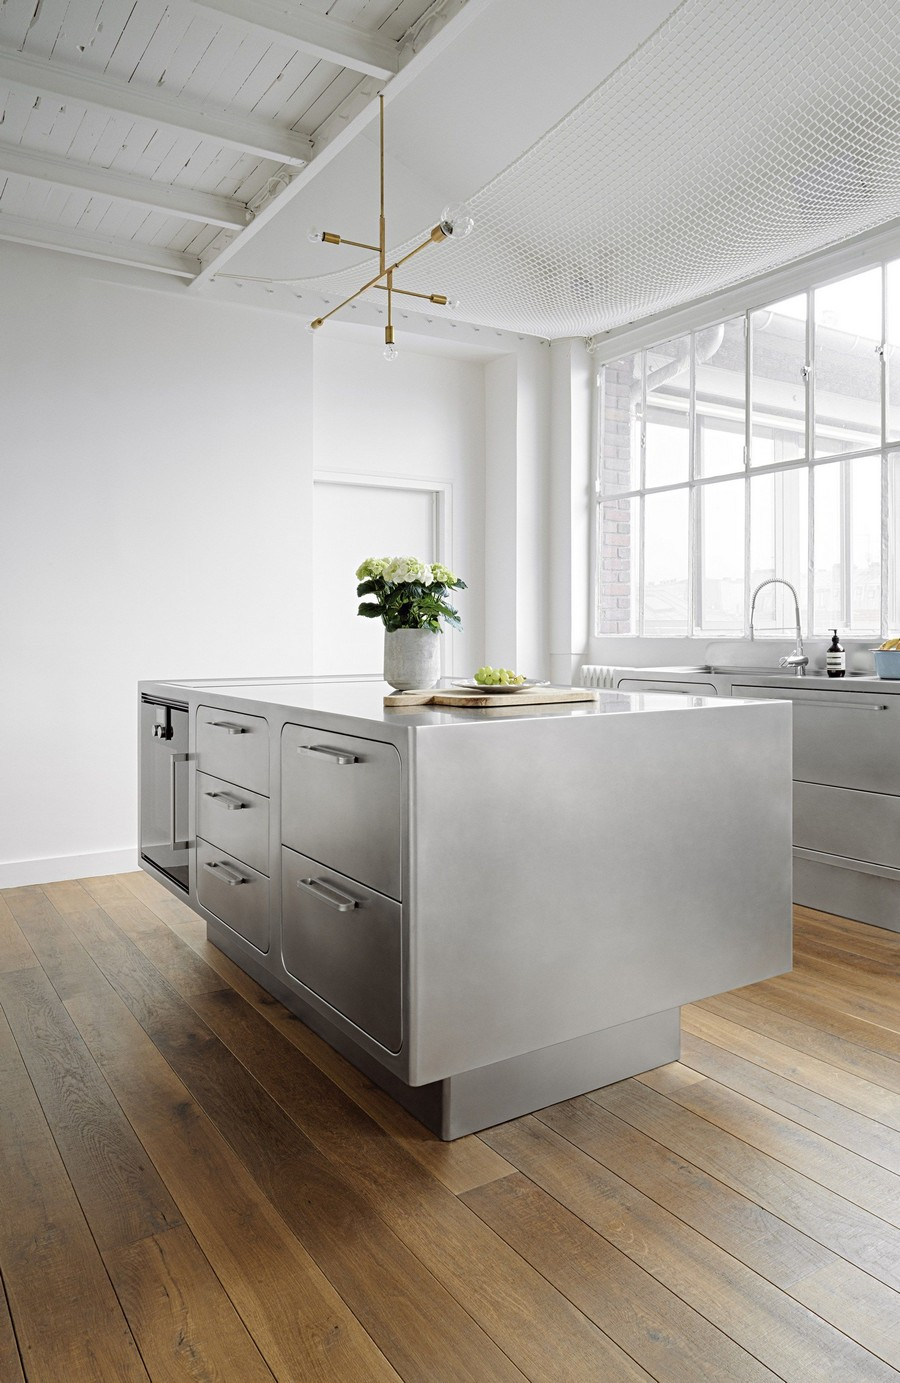 You'll Truly Love the Industrial Style Kitchen of this Parisian Loft 5 Industrial Style Kitchen This Industrial Style Kitchen Will Be the Division of Your Dreams Youll Truly Love the Industrial Style Kitchen of this Parisian Loft 5